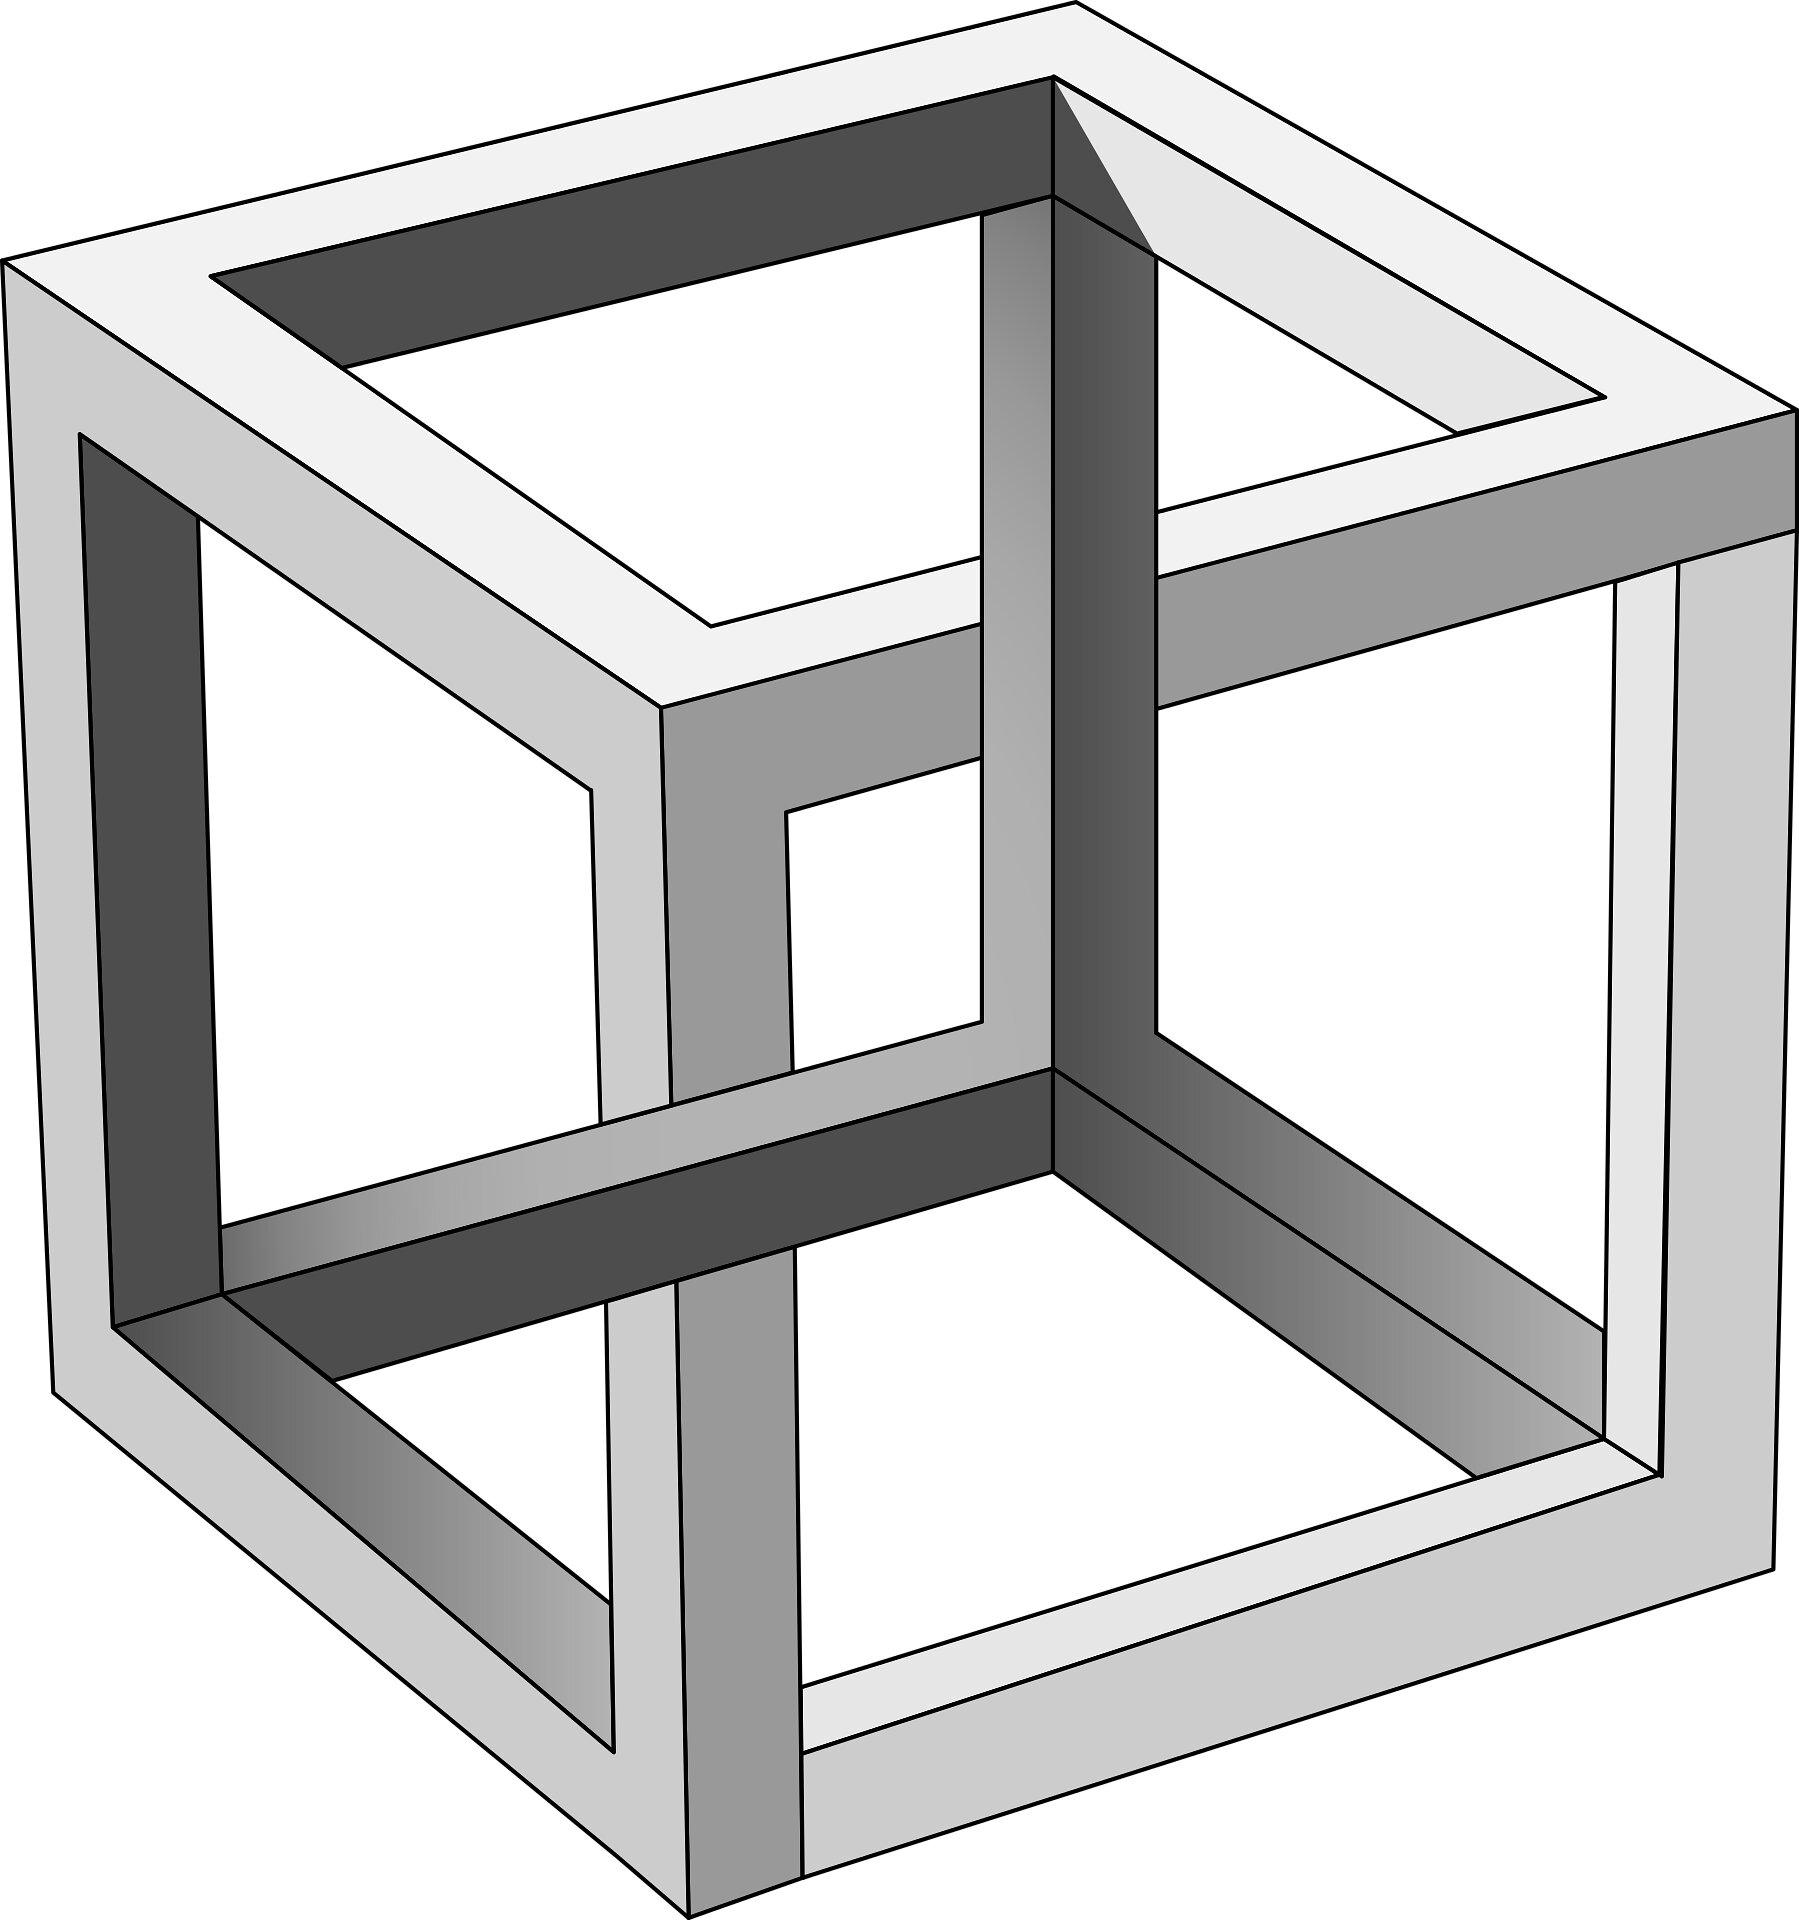 Researchers use computer vision to better understand optical illusions